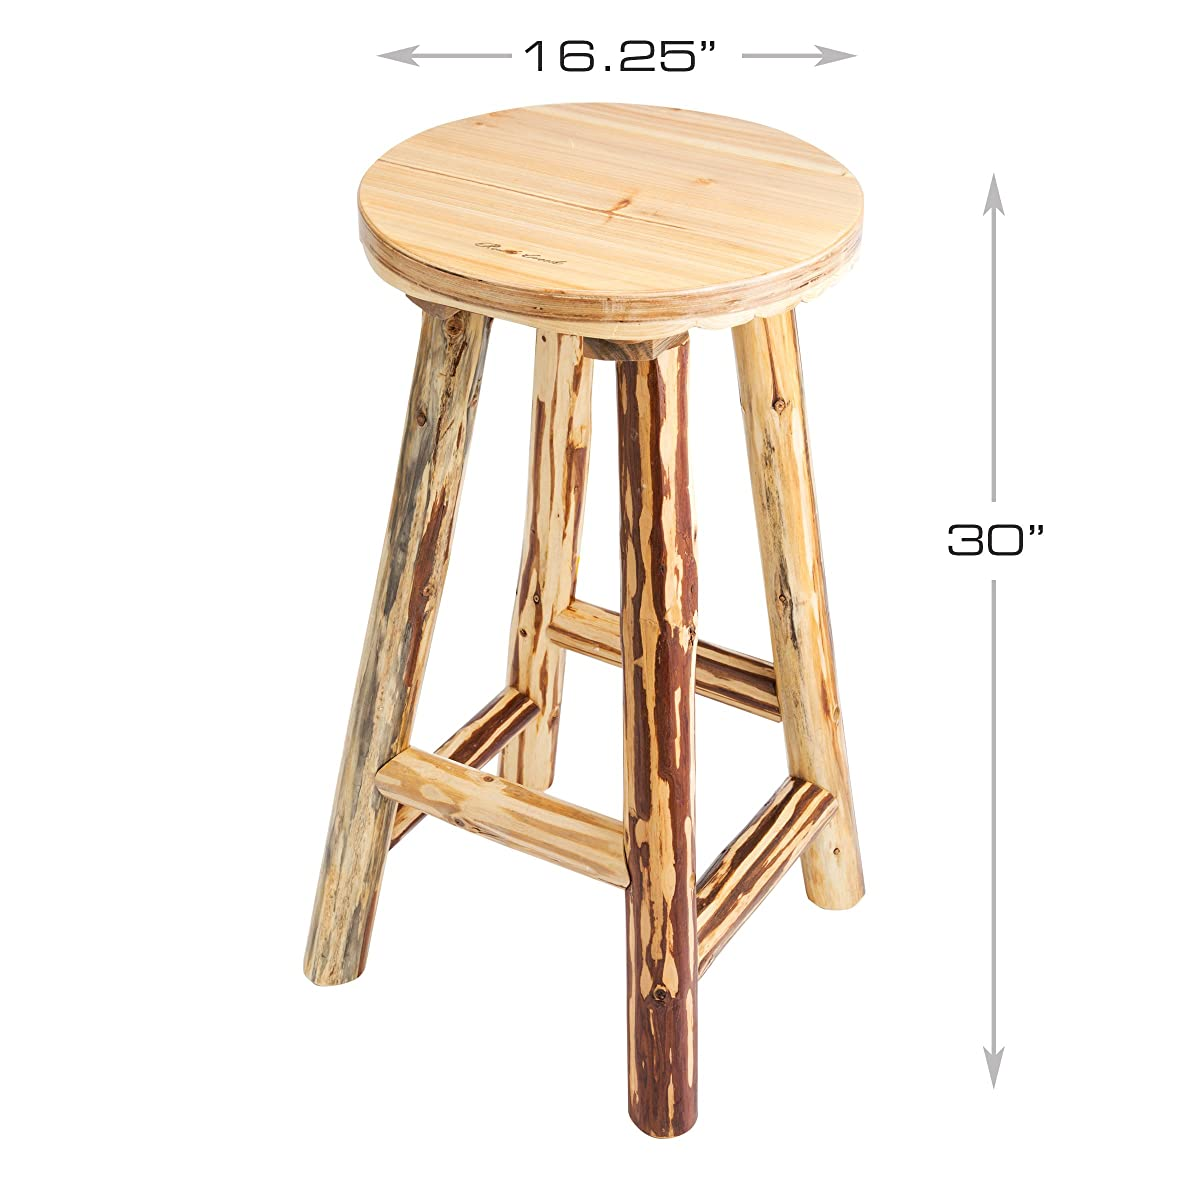 Rush Creek Creations Rustic Reloading Bar Stool